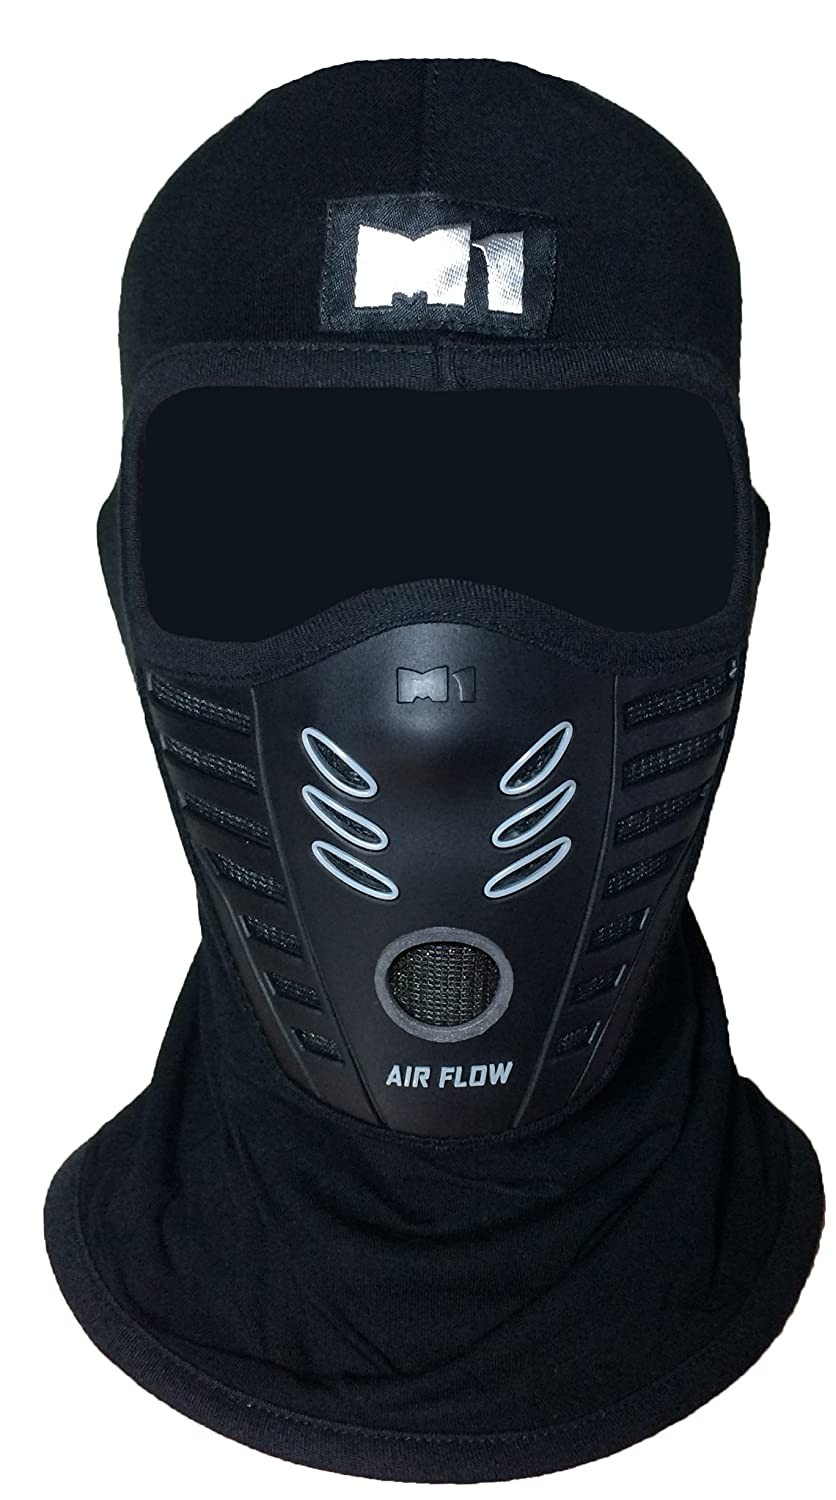 M1 Full Face Cover Balaclava Protection Filter Rubber Mask (BALA-FILT-RUBB-BLCK)